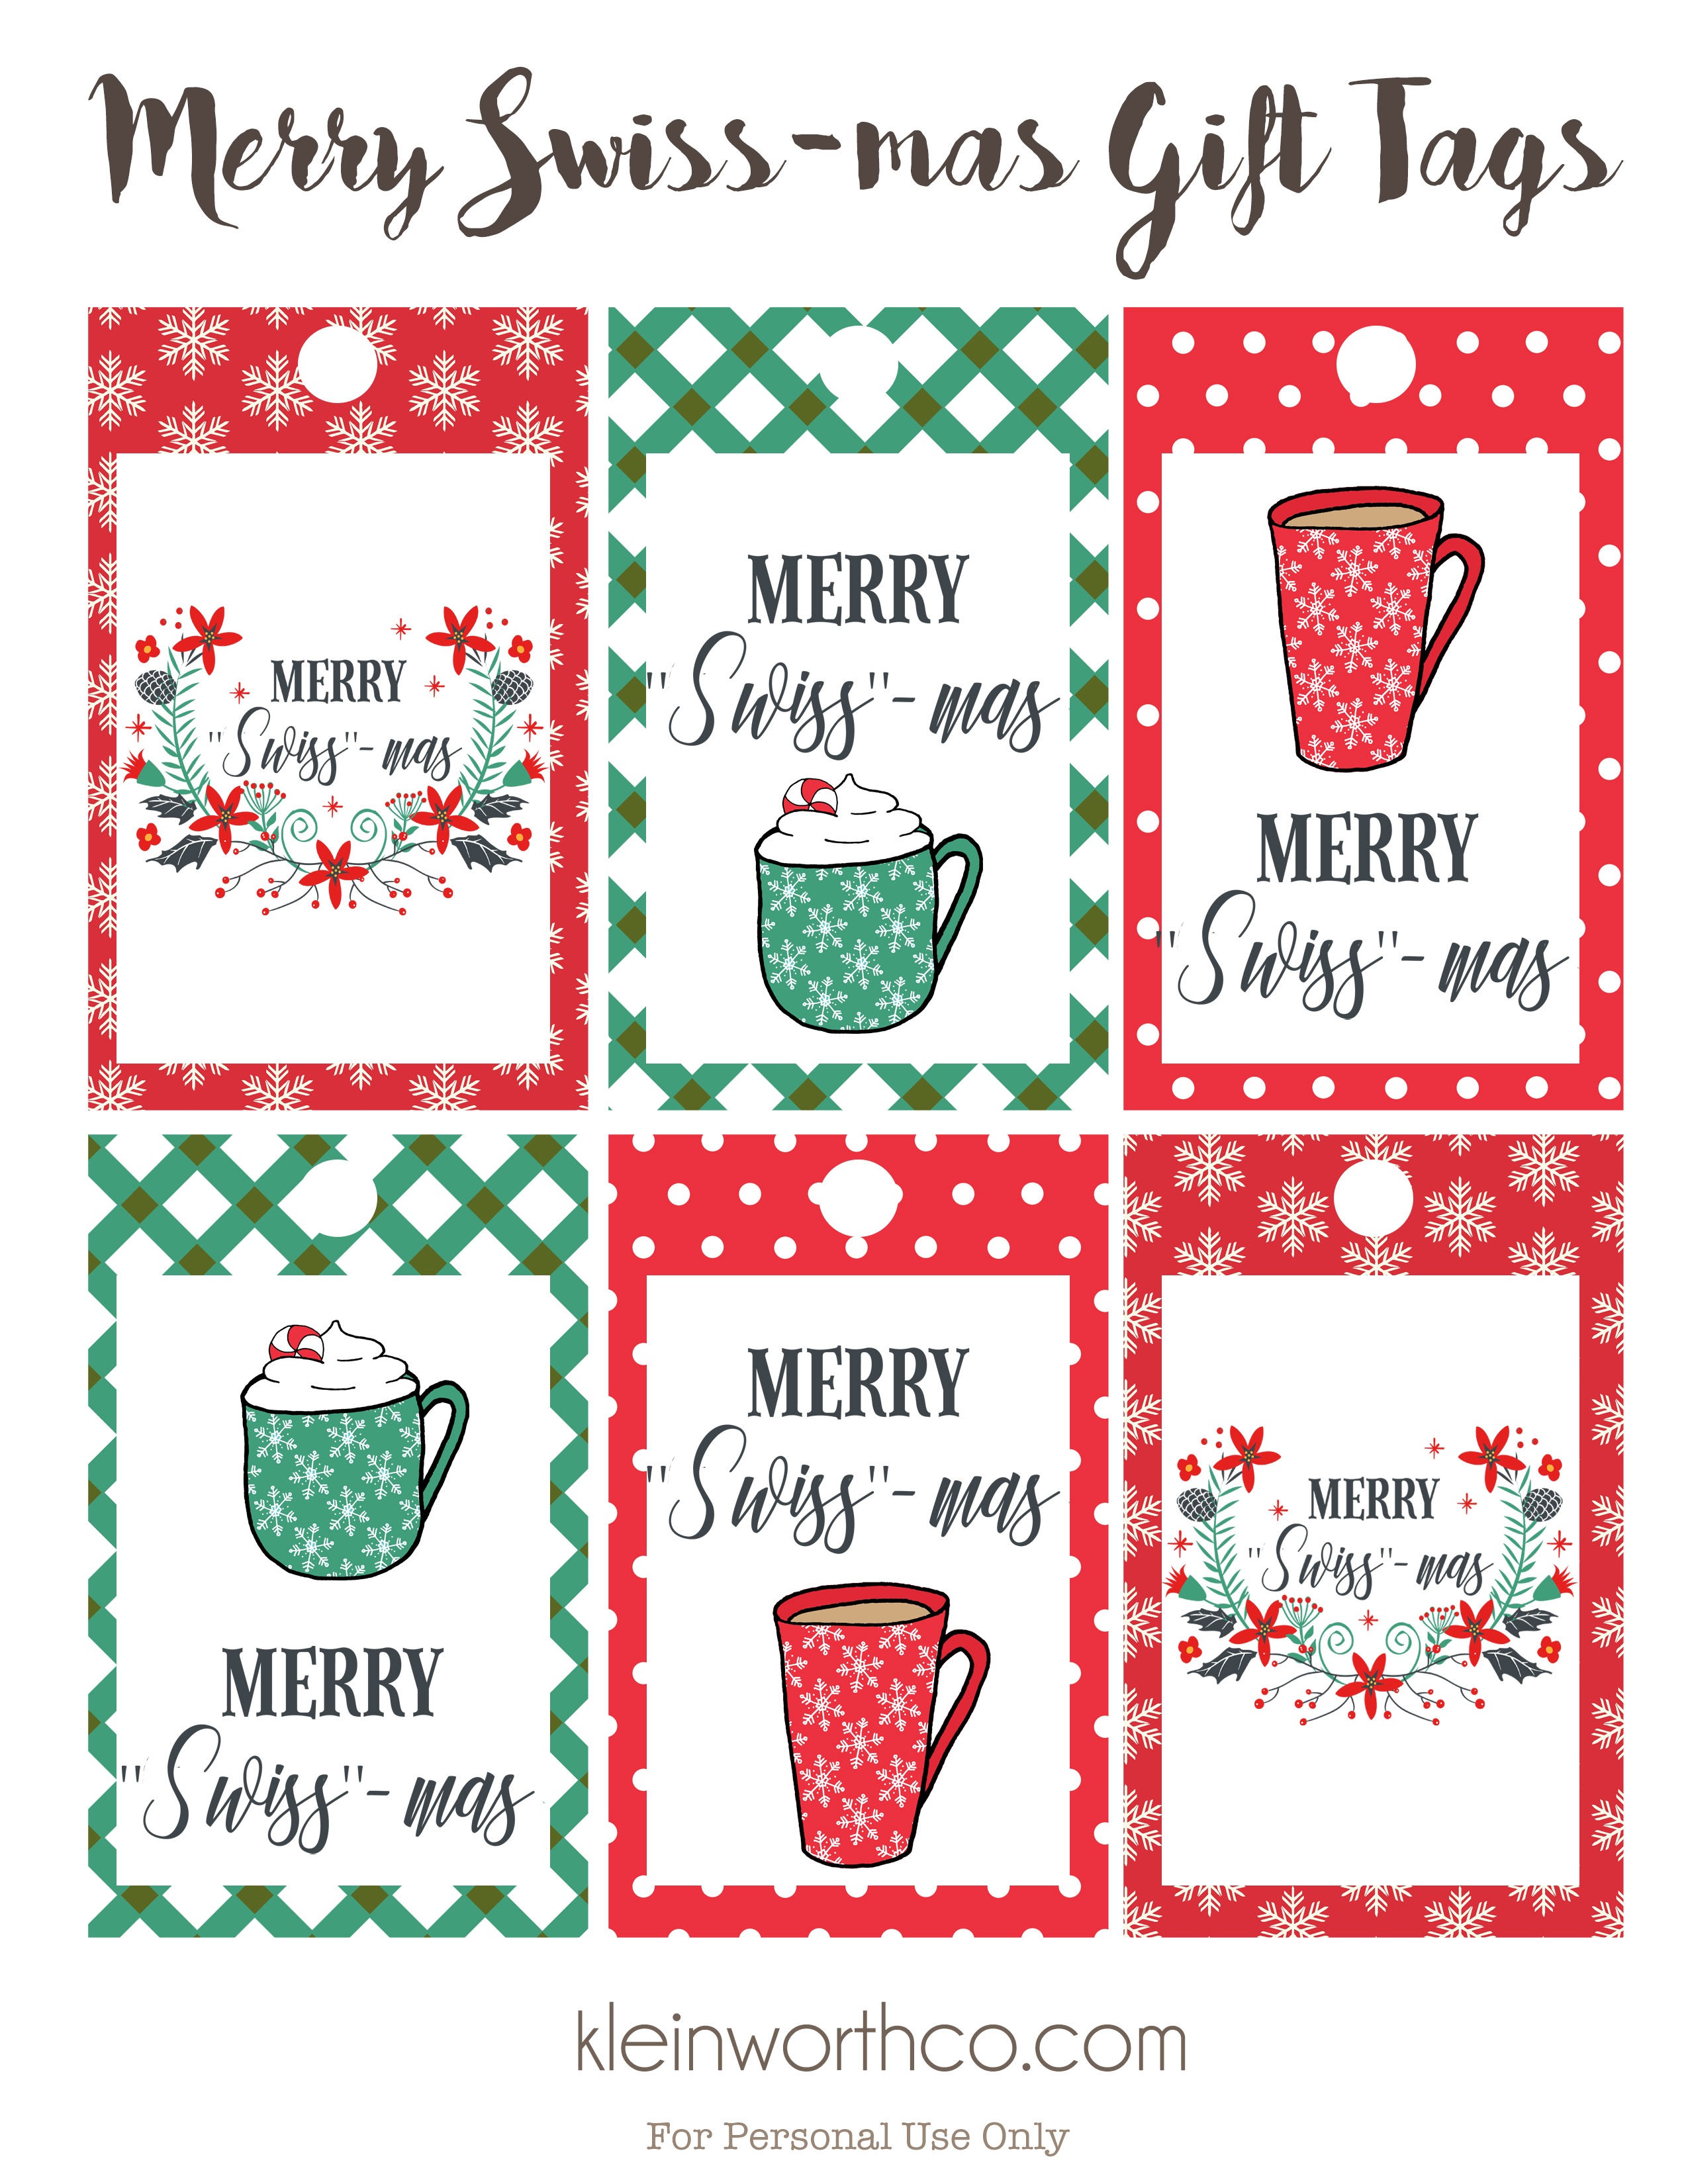 graphic relating to Merry Christmas Tags Printable known as Merry Swiss-Mas Totally free Printable Present Tags - Kleinworth Co